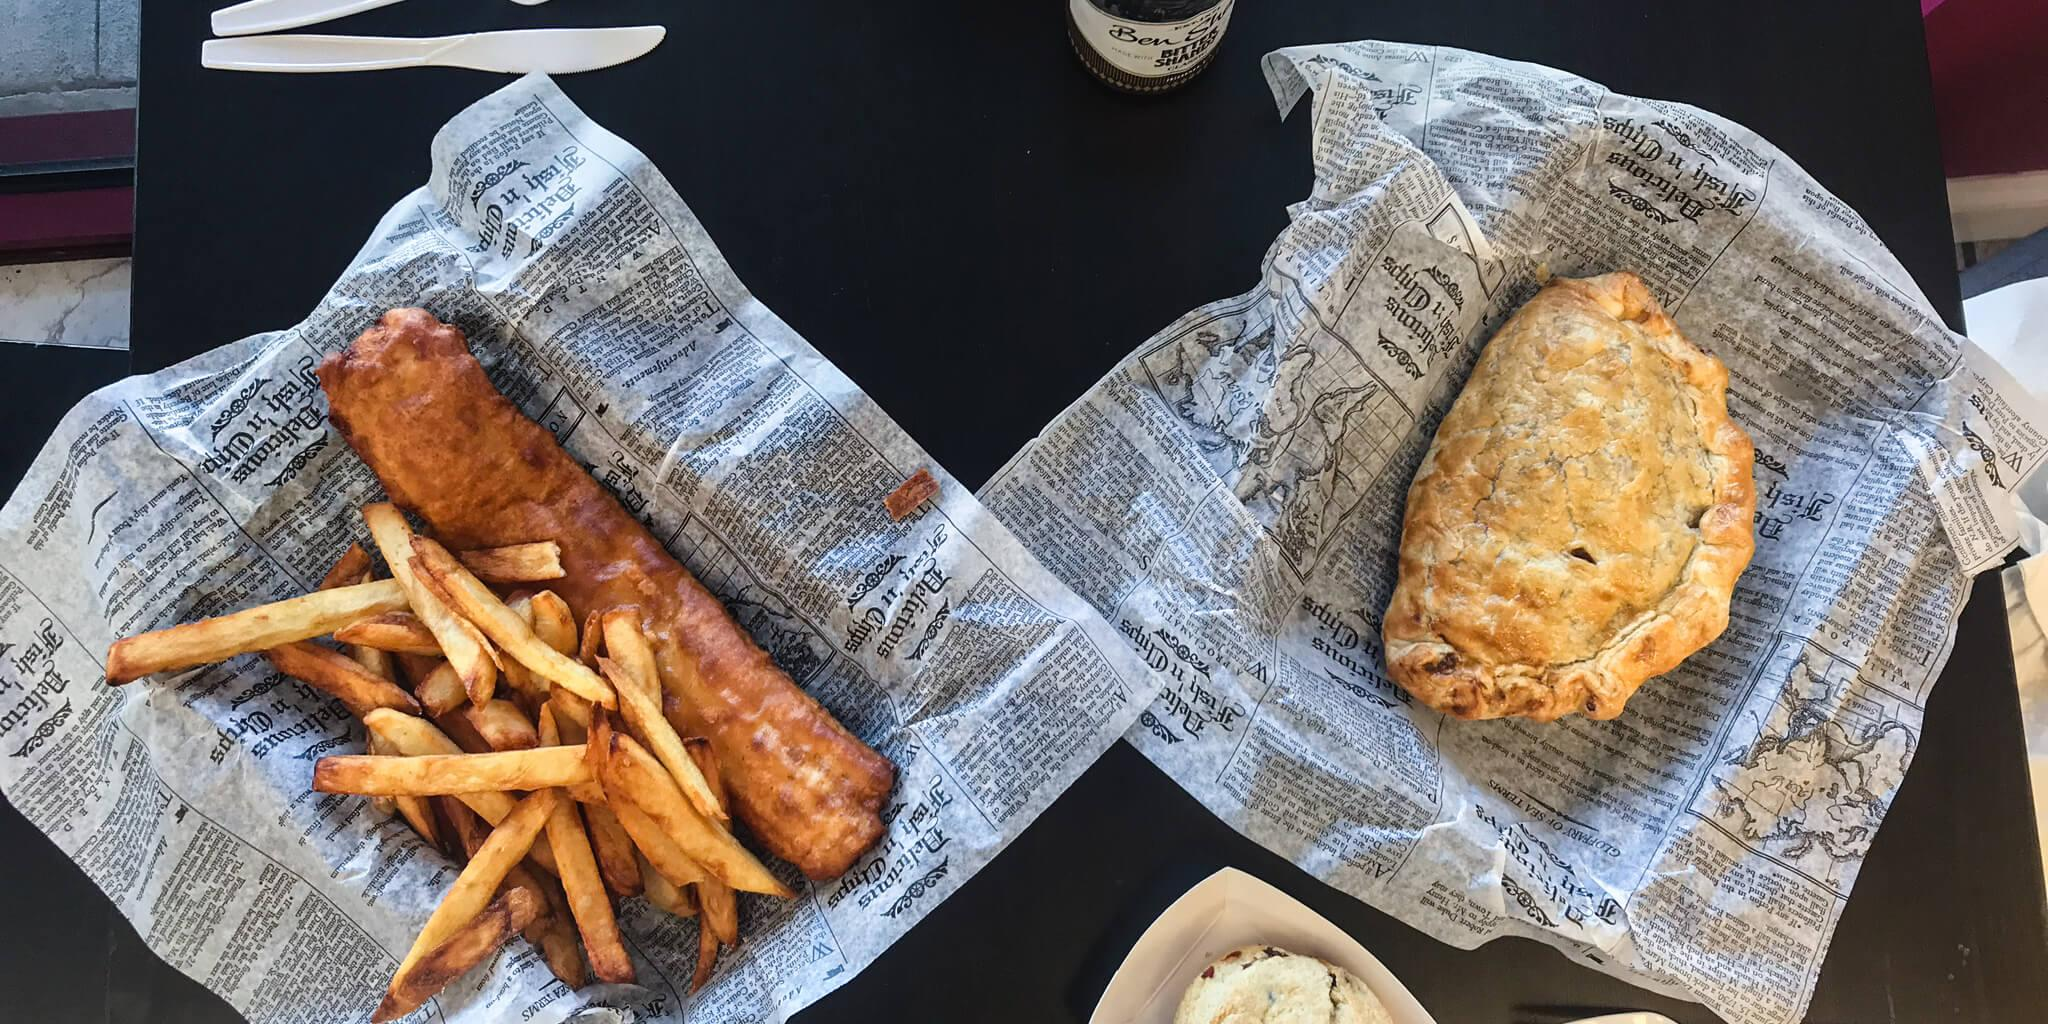 fish and chips and a meat pie from Proper Pie Company in Davenport, FL